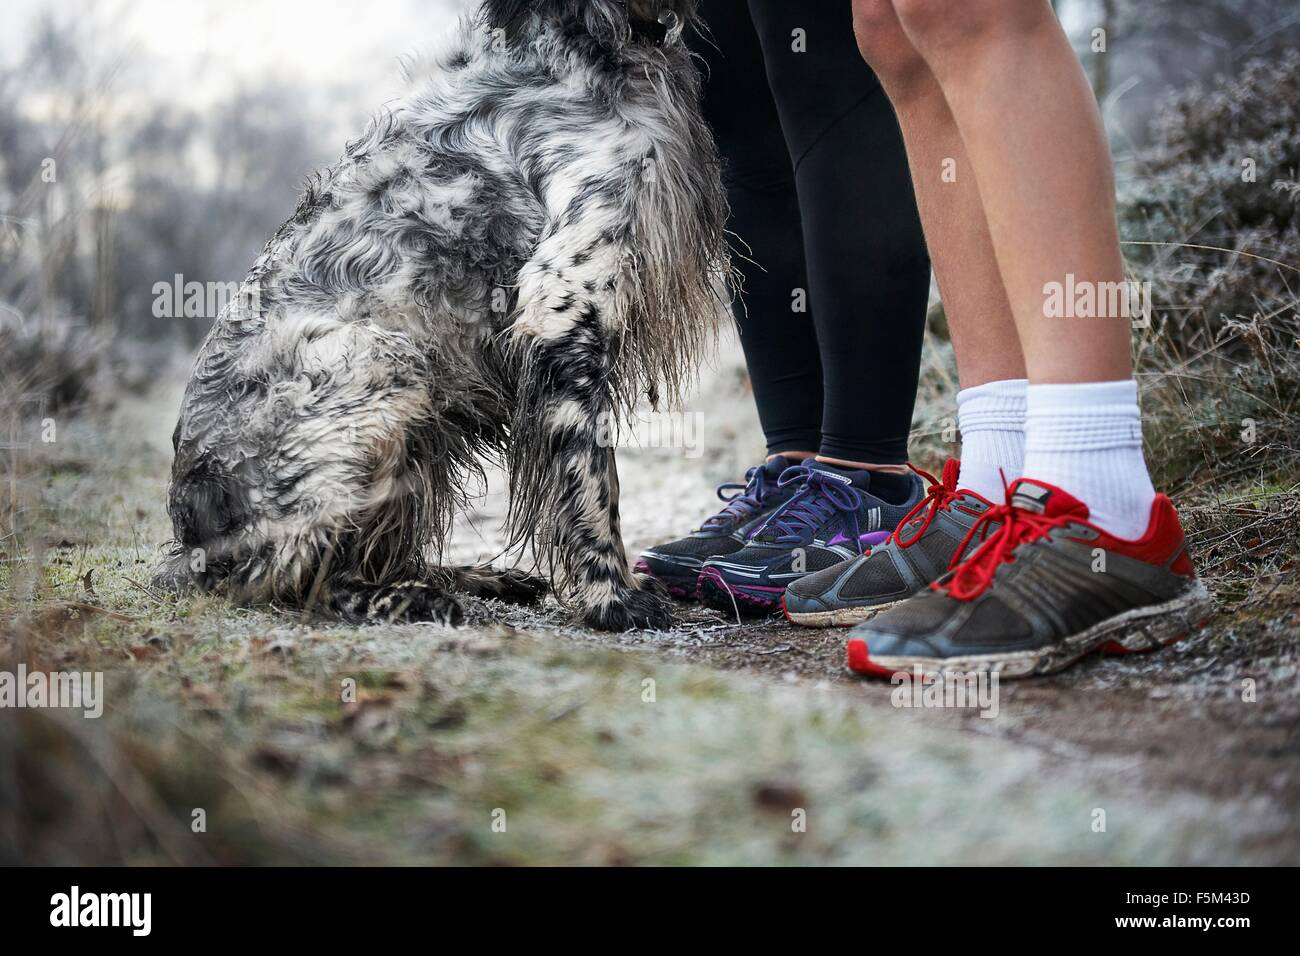 Legs of mother and son wearing trainers and sitting dog - Stock Image